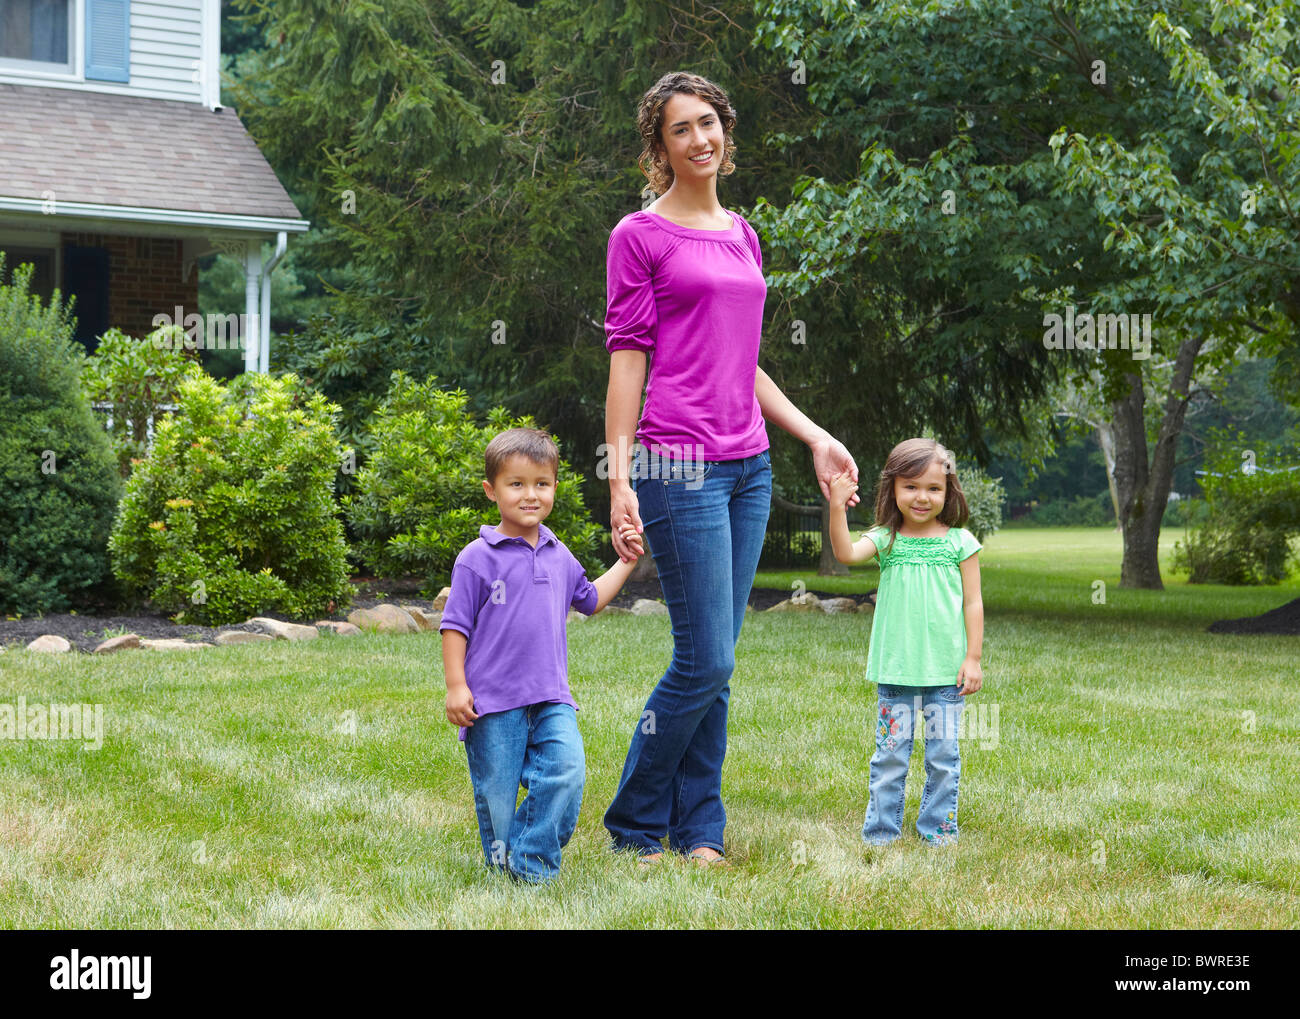 Mother holding hands with son and daughter in front yard Stock Photo